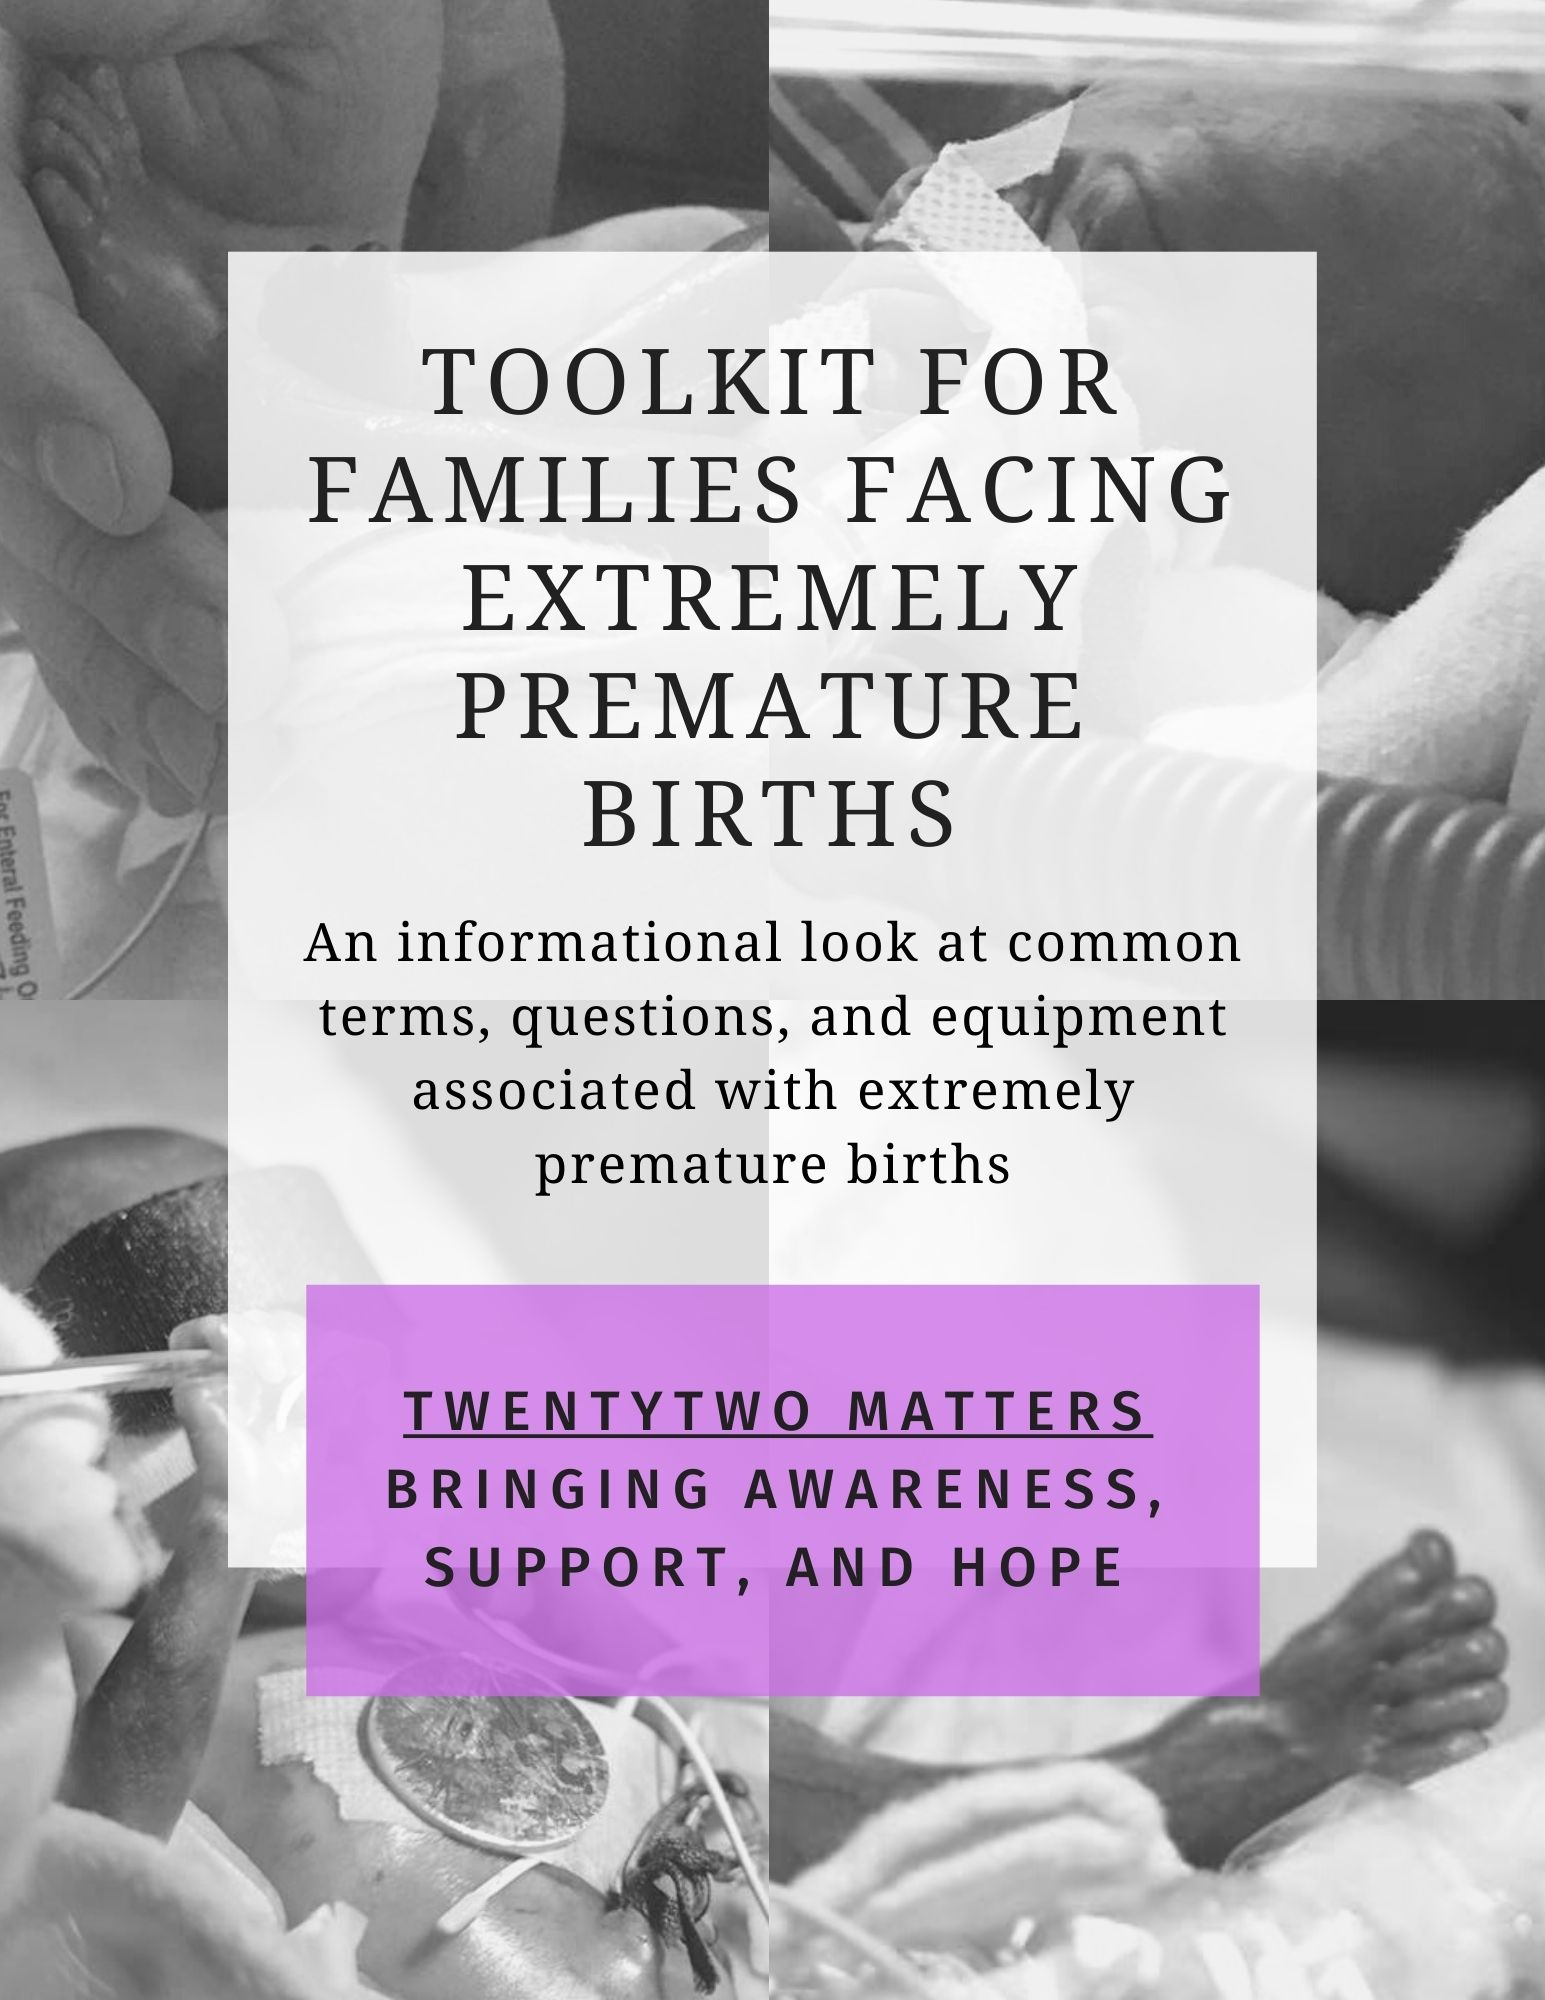 Toolkit for Families Facing Extremely Premature Births